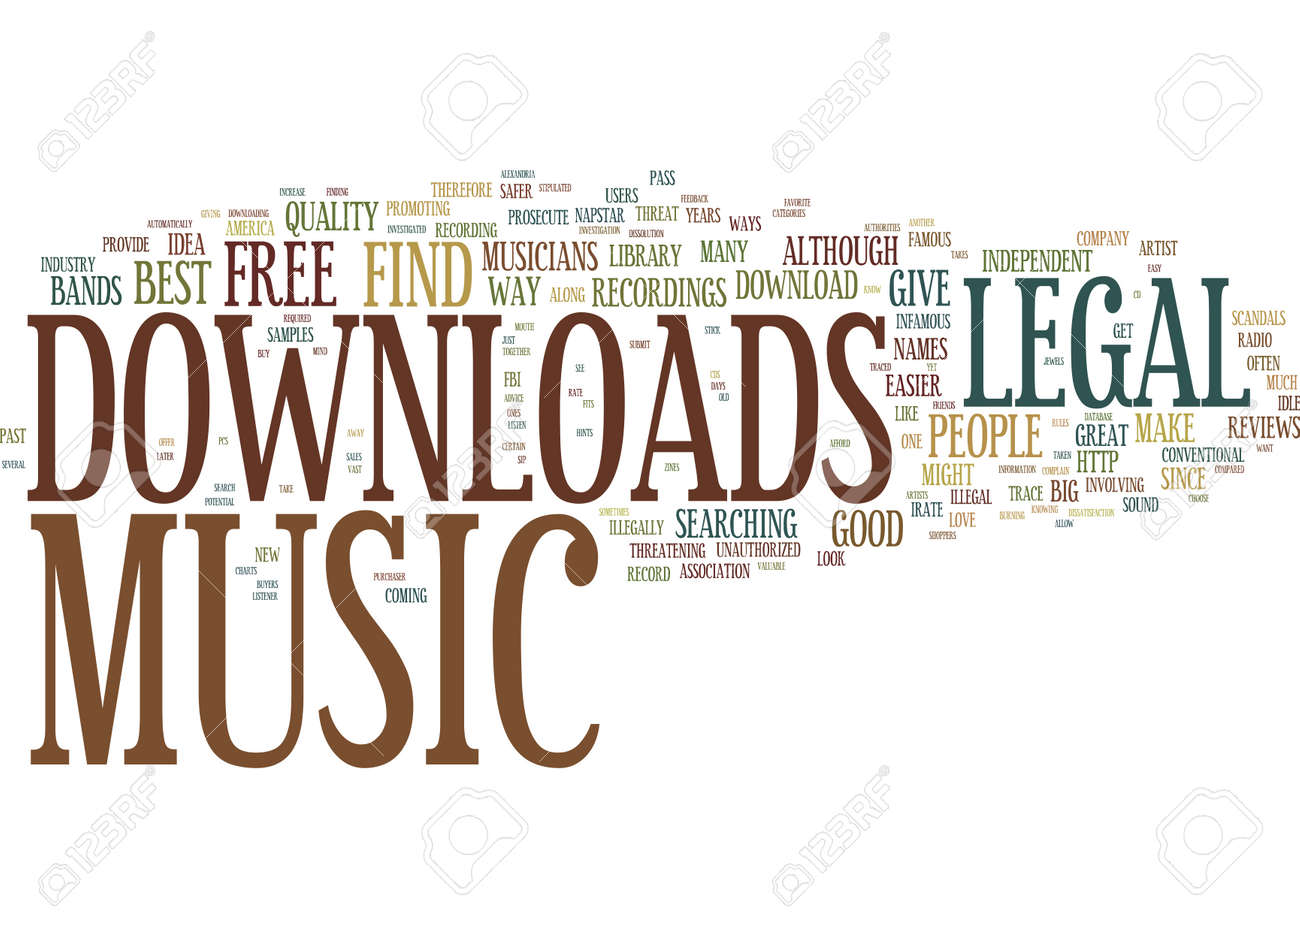 free legal music downloads for laptops